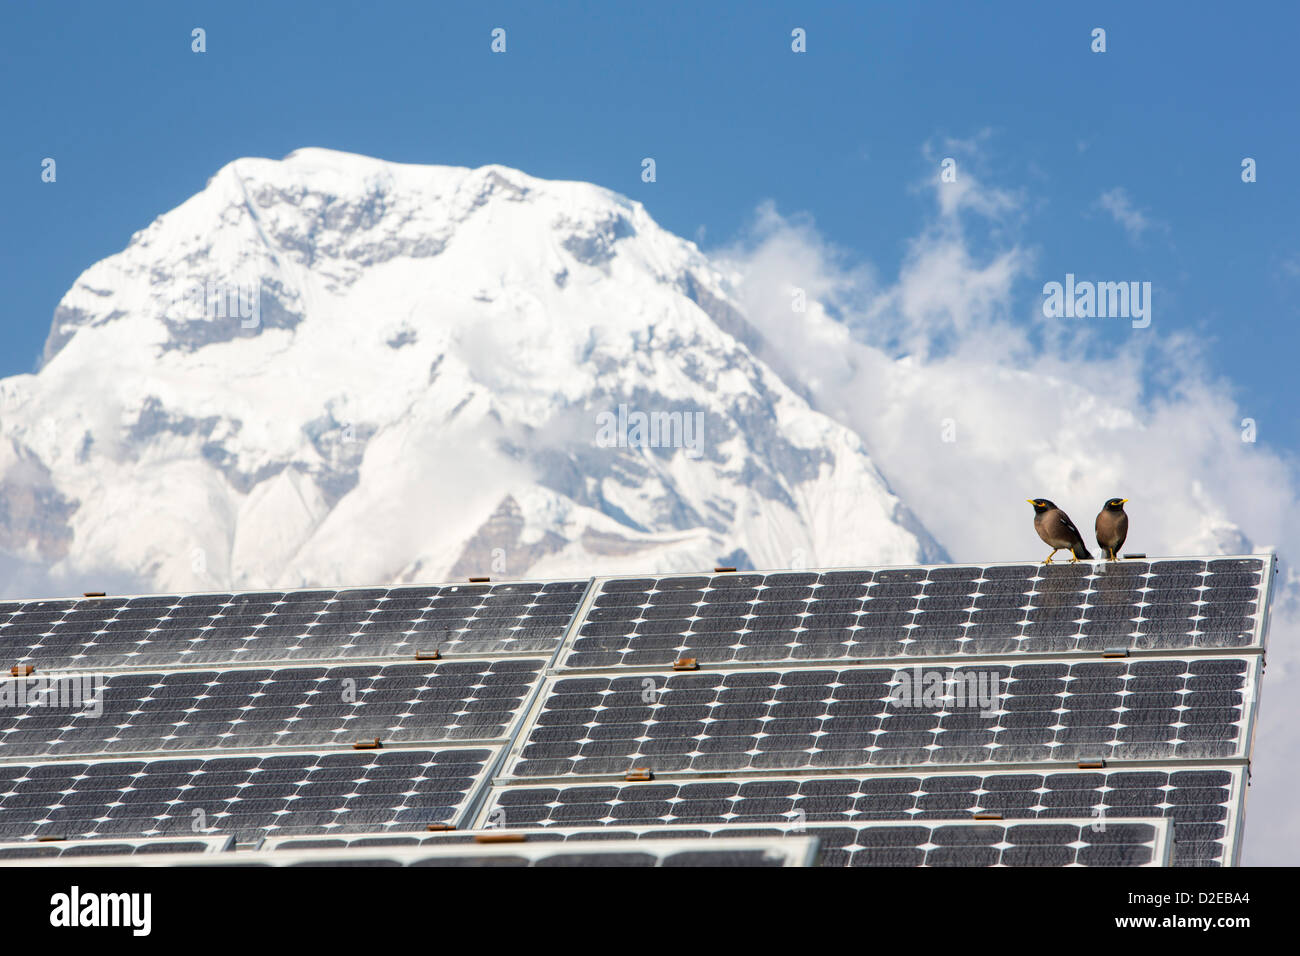 Solar photo voltaic panels at Ghandruk in the Himalayas, Nepal ...